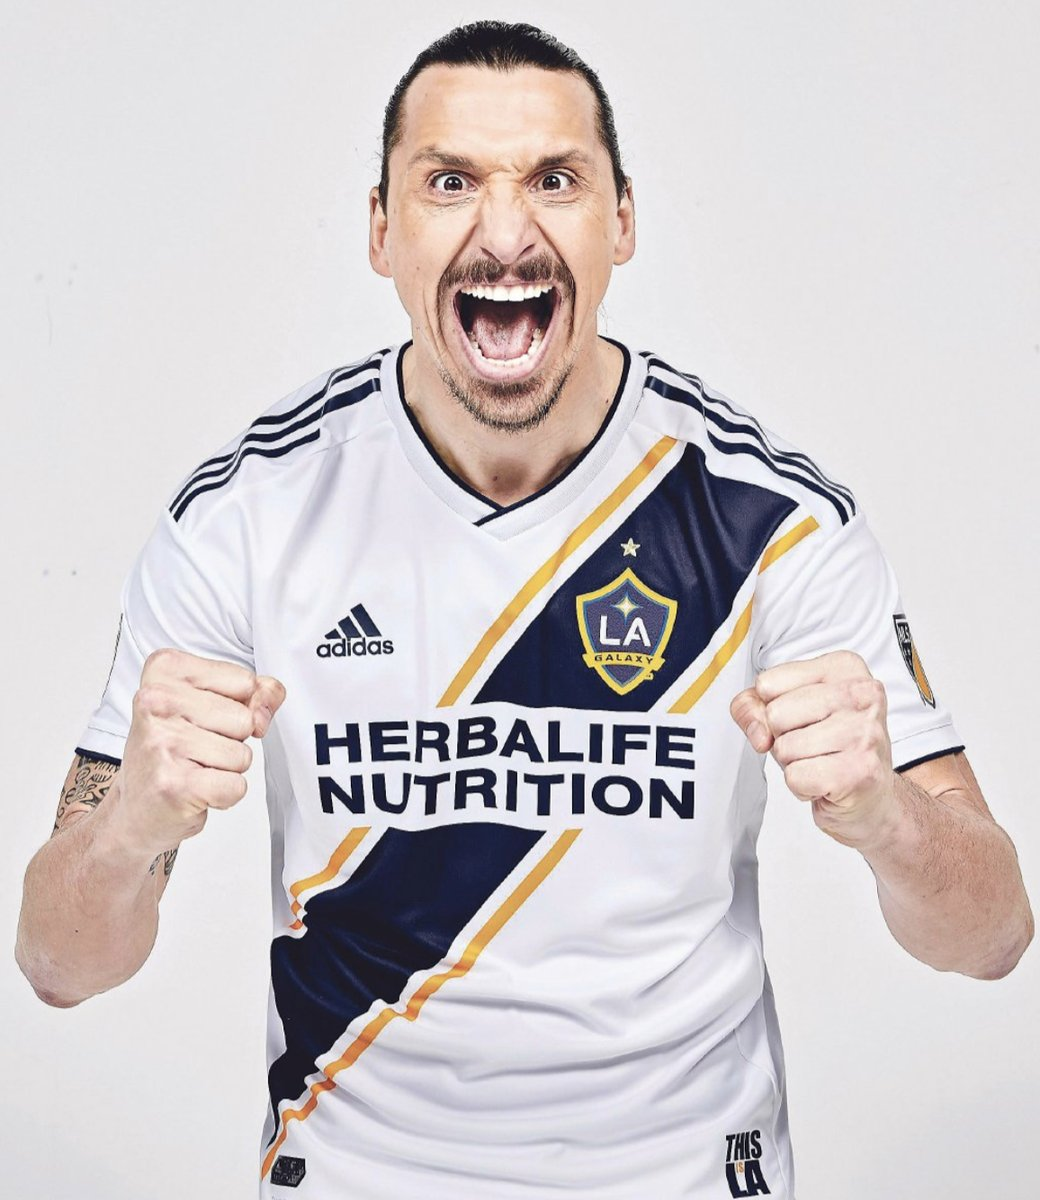 Ibrahimovic buys full-page ad in paper to announce LA Galaxy move in typical Zlatan style